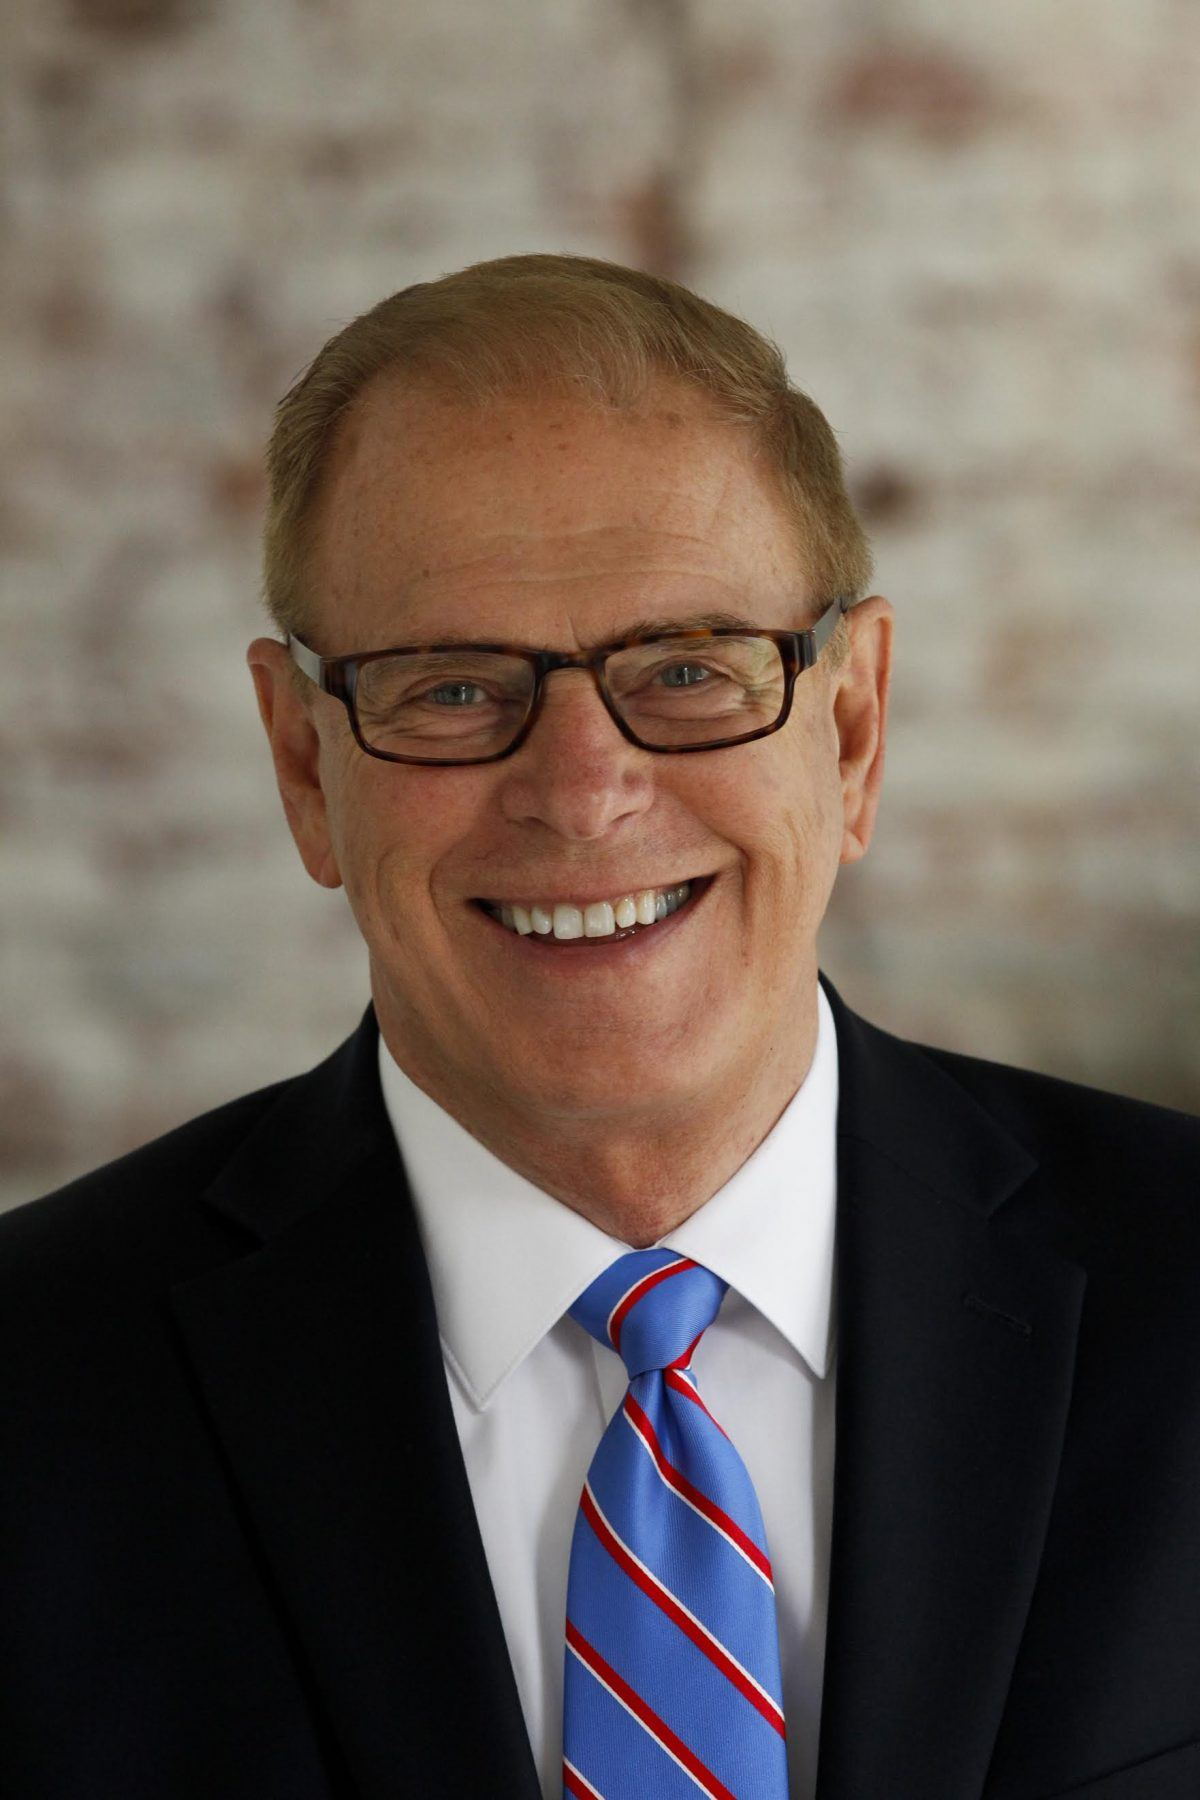 Ted Strickland, former Governor of Ohio